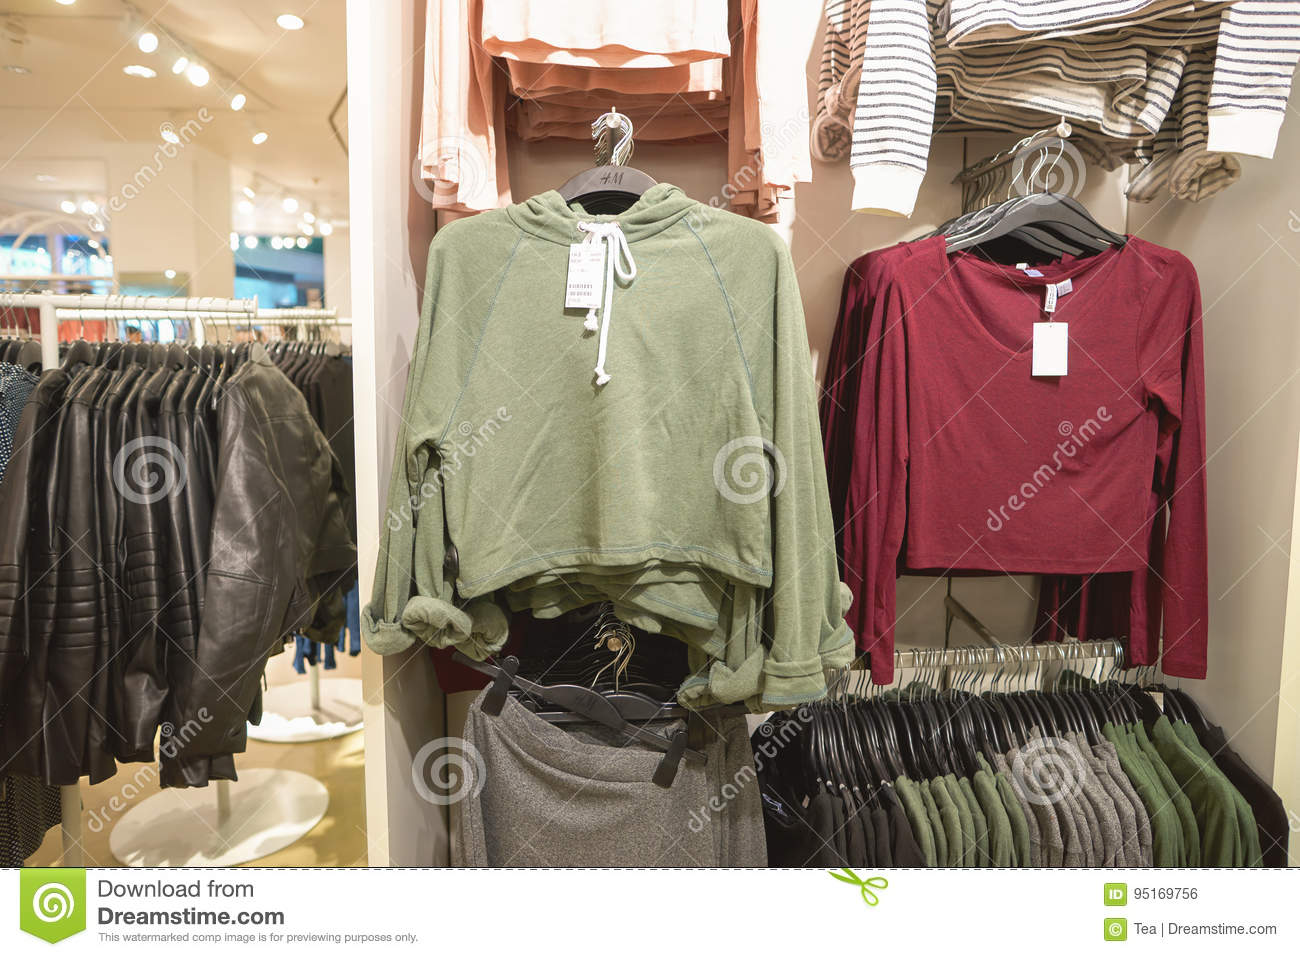 44ed9b71087 H   M store stock photo. Image of inside